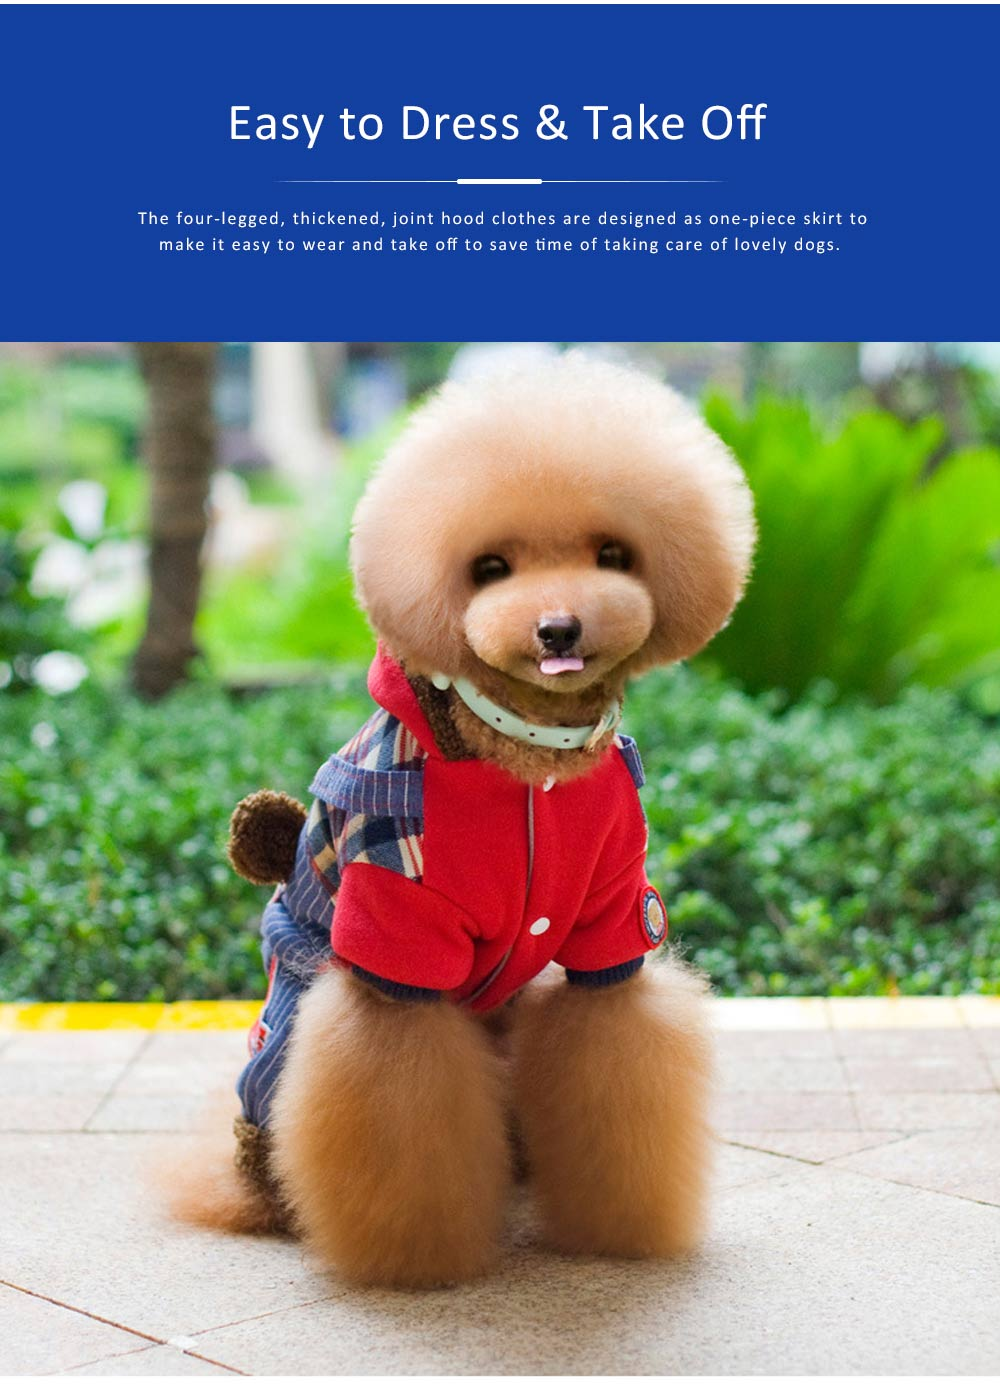 Thickened, Joint, Four-legged Dog Hood Clothes for Teddy Dog Clothes New Style EXW Wholesale Teddy Clothes 4